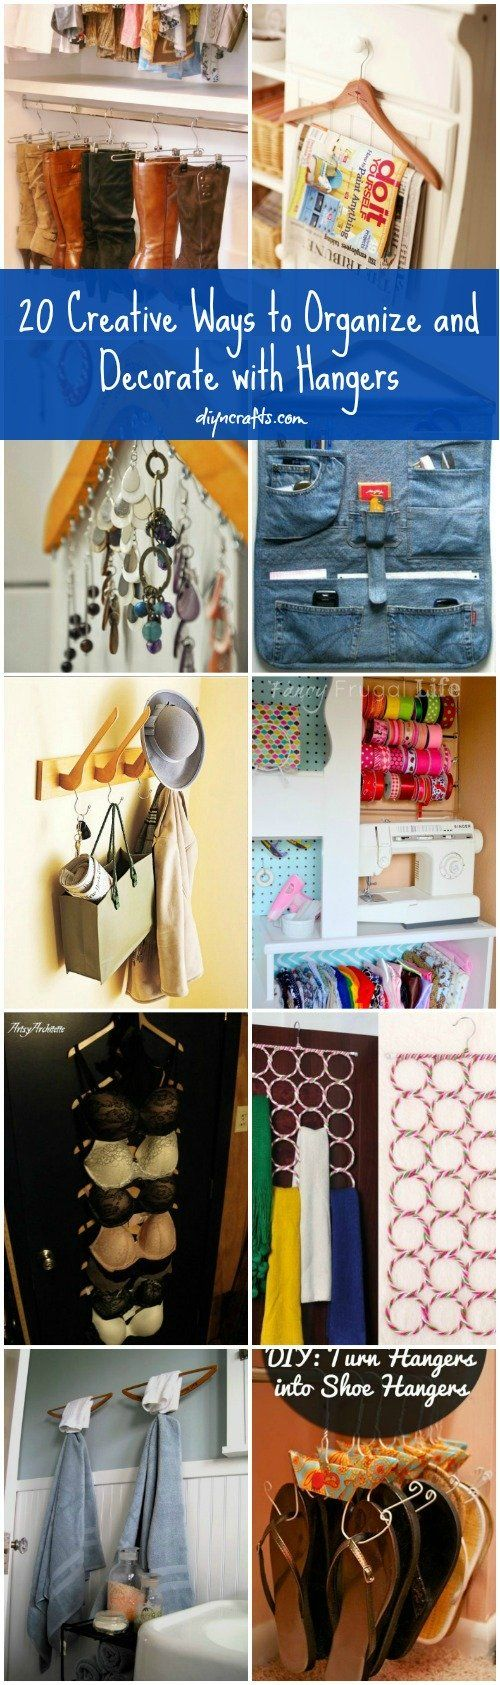 20 Creative Ways to Organize and Decorate with Hangers – Page 2 of 4 –...